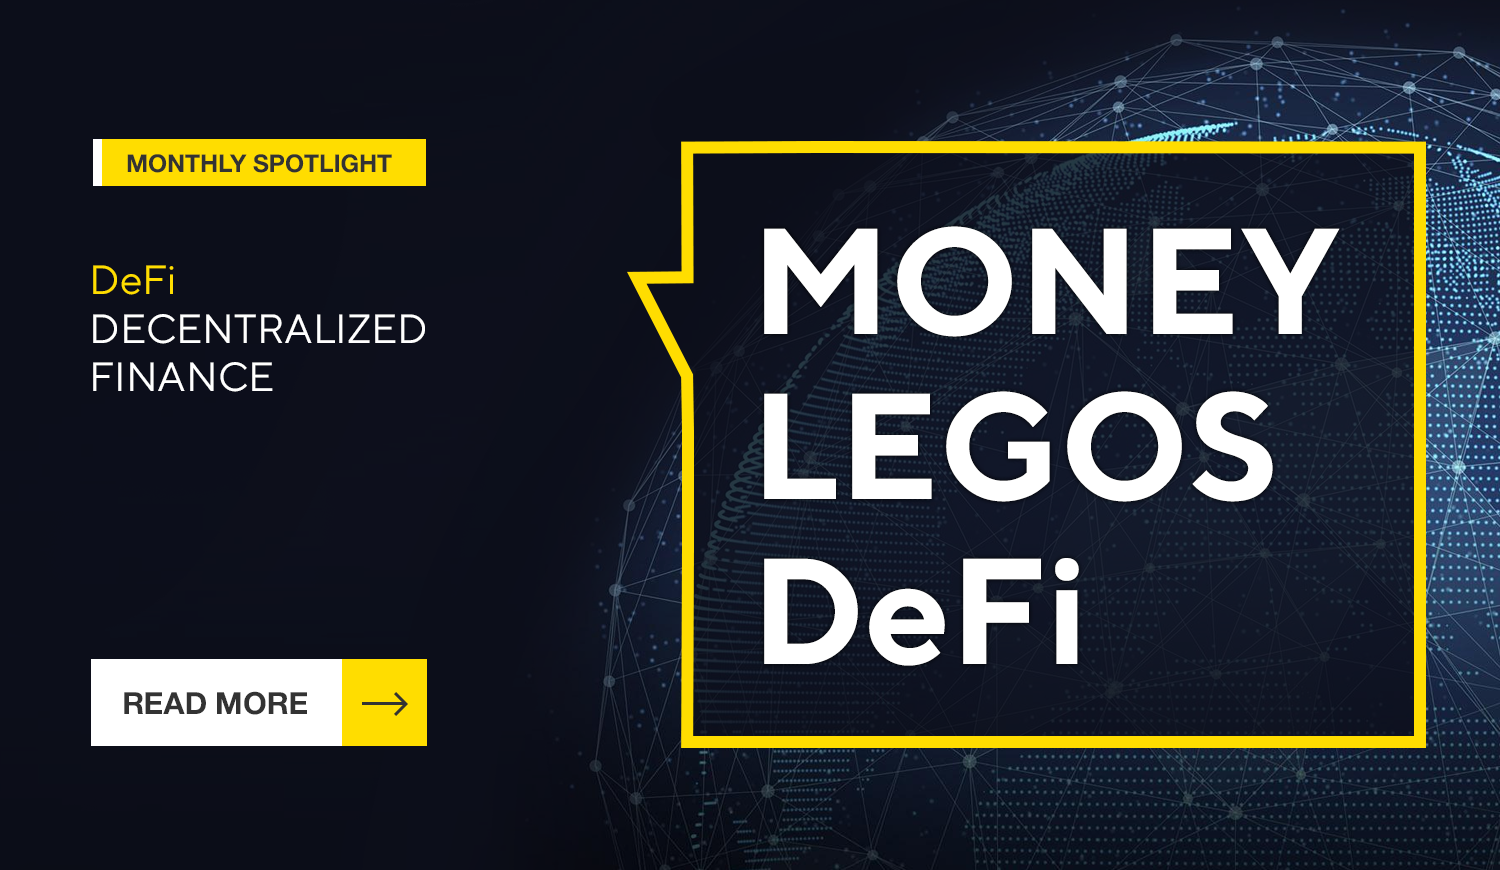 Money Legos DeFi